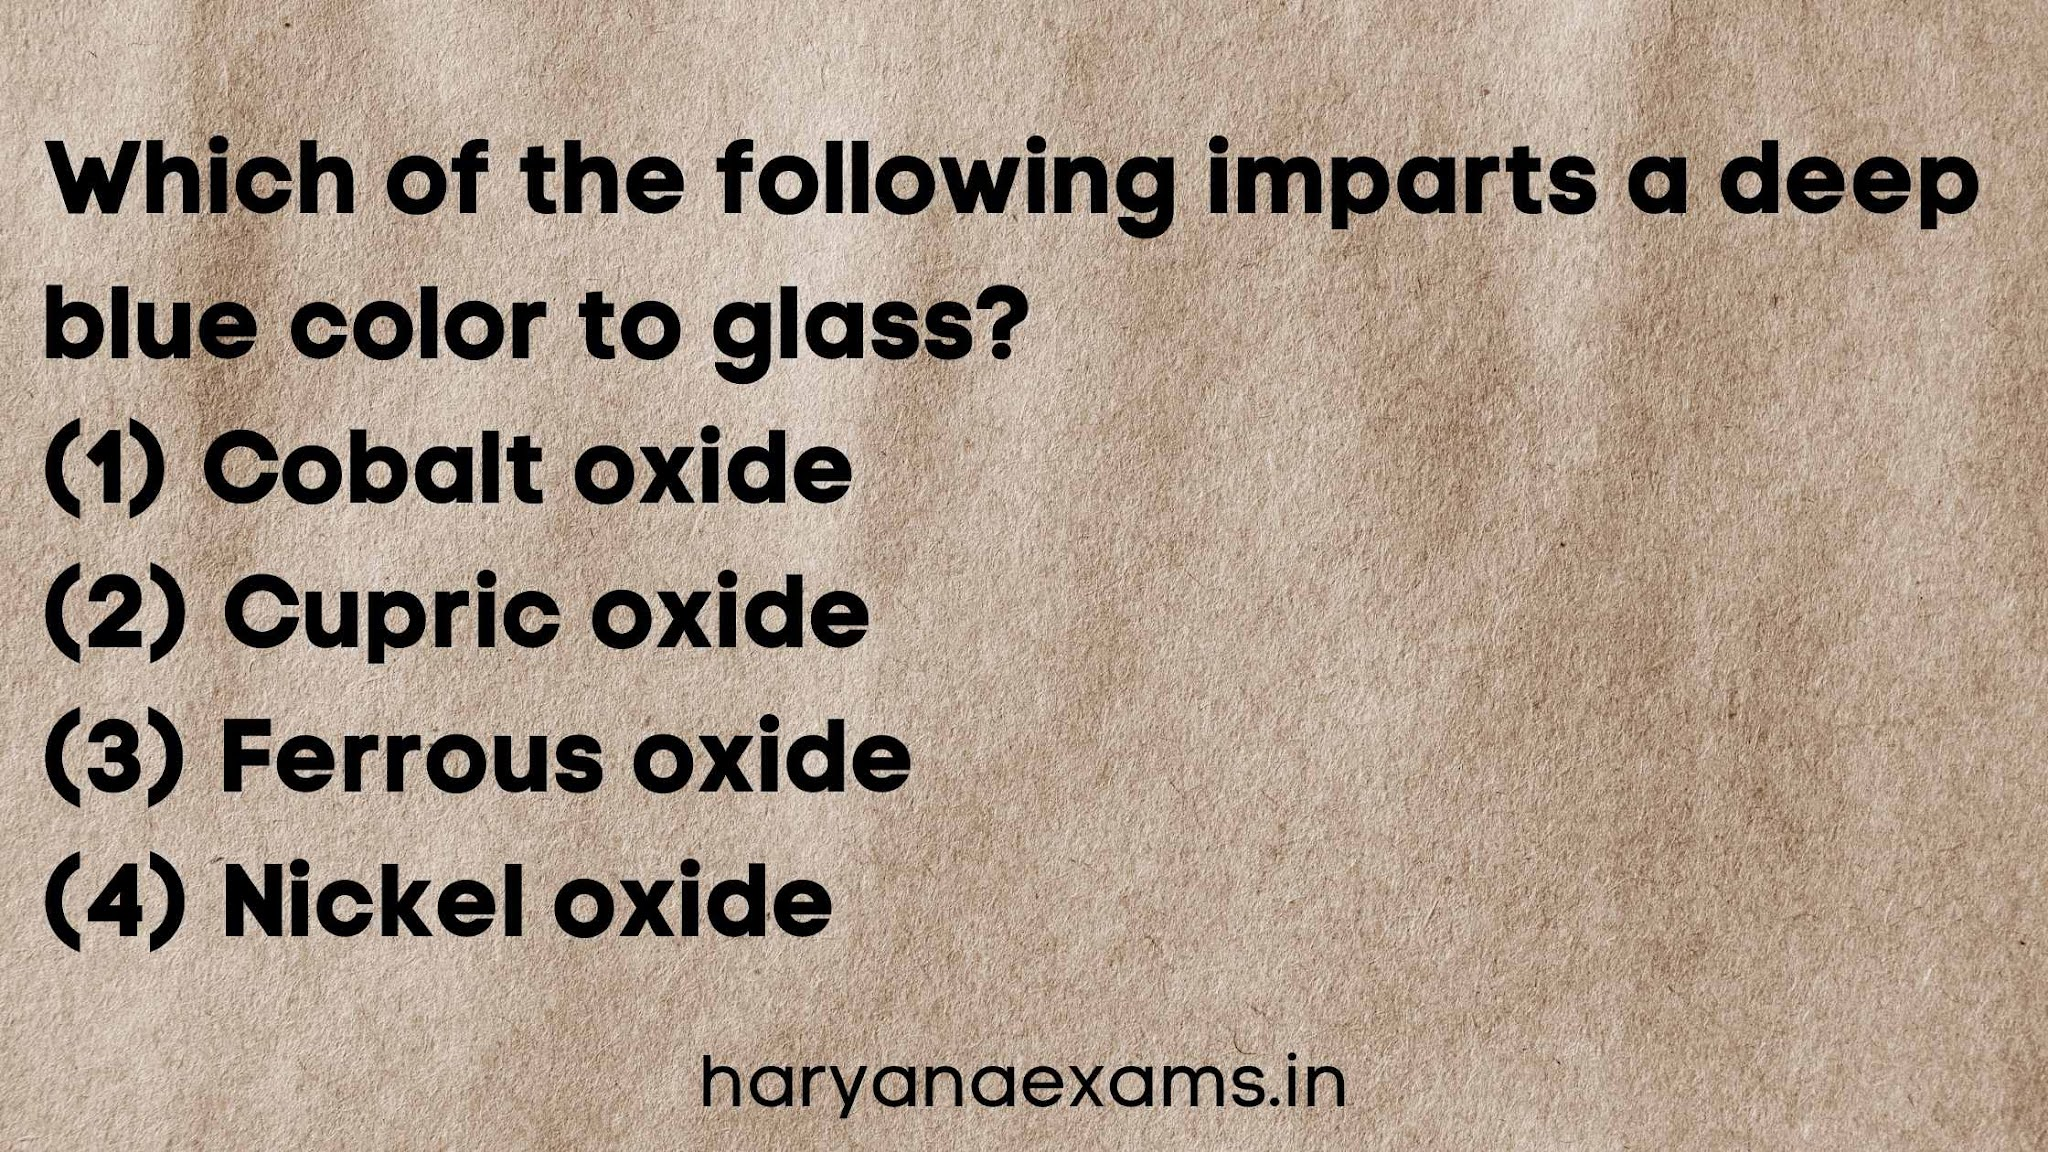 Which of the following imparts a deep blue color to glass?   (1) Cobalt oxide   (2) Cupric oxide   (3) Ferrous oxide   (4) Nickel oxide